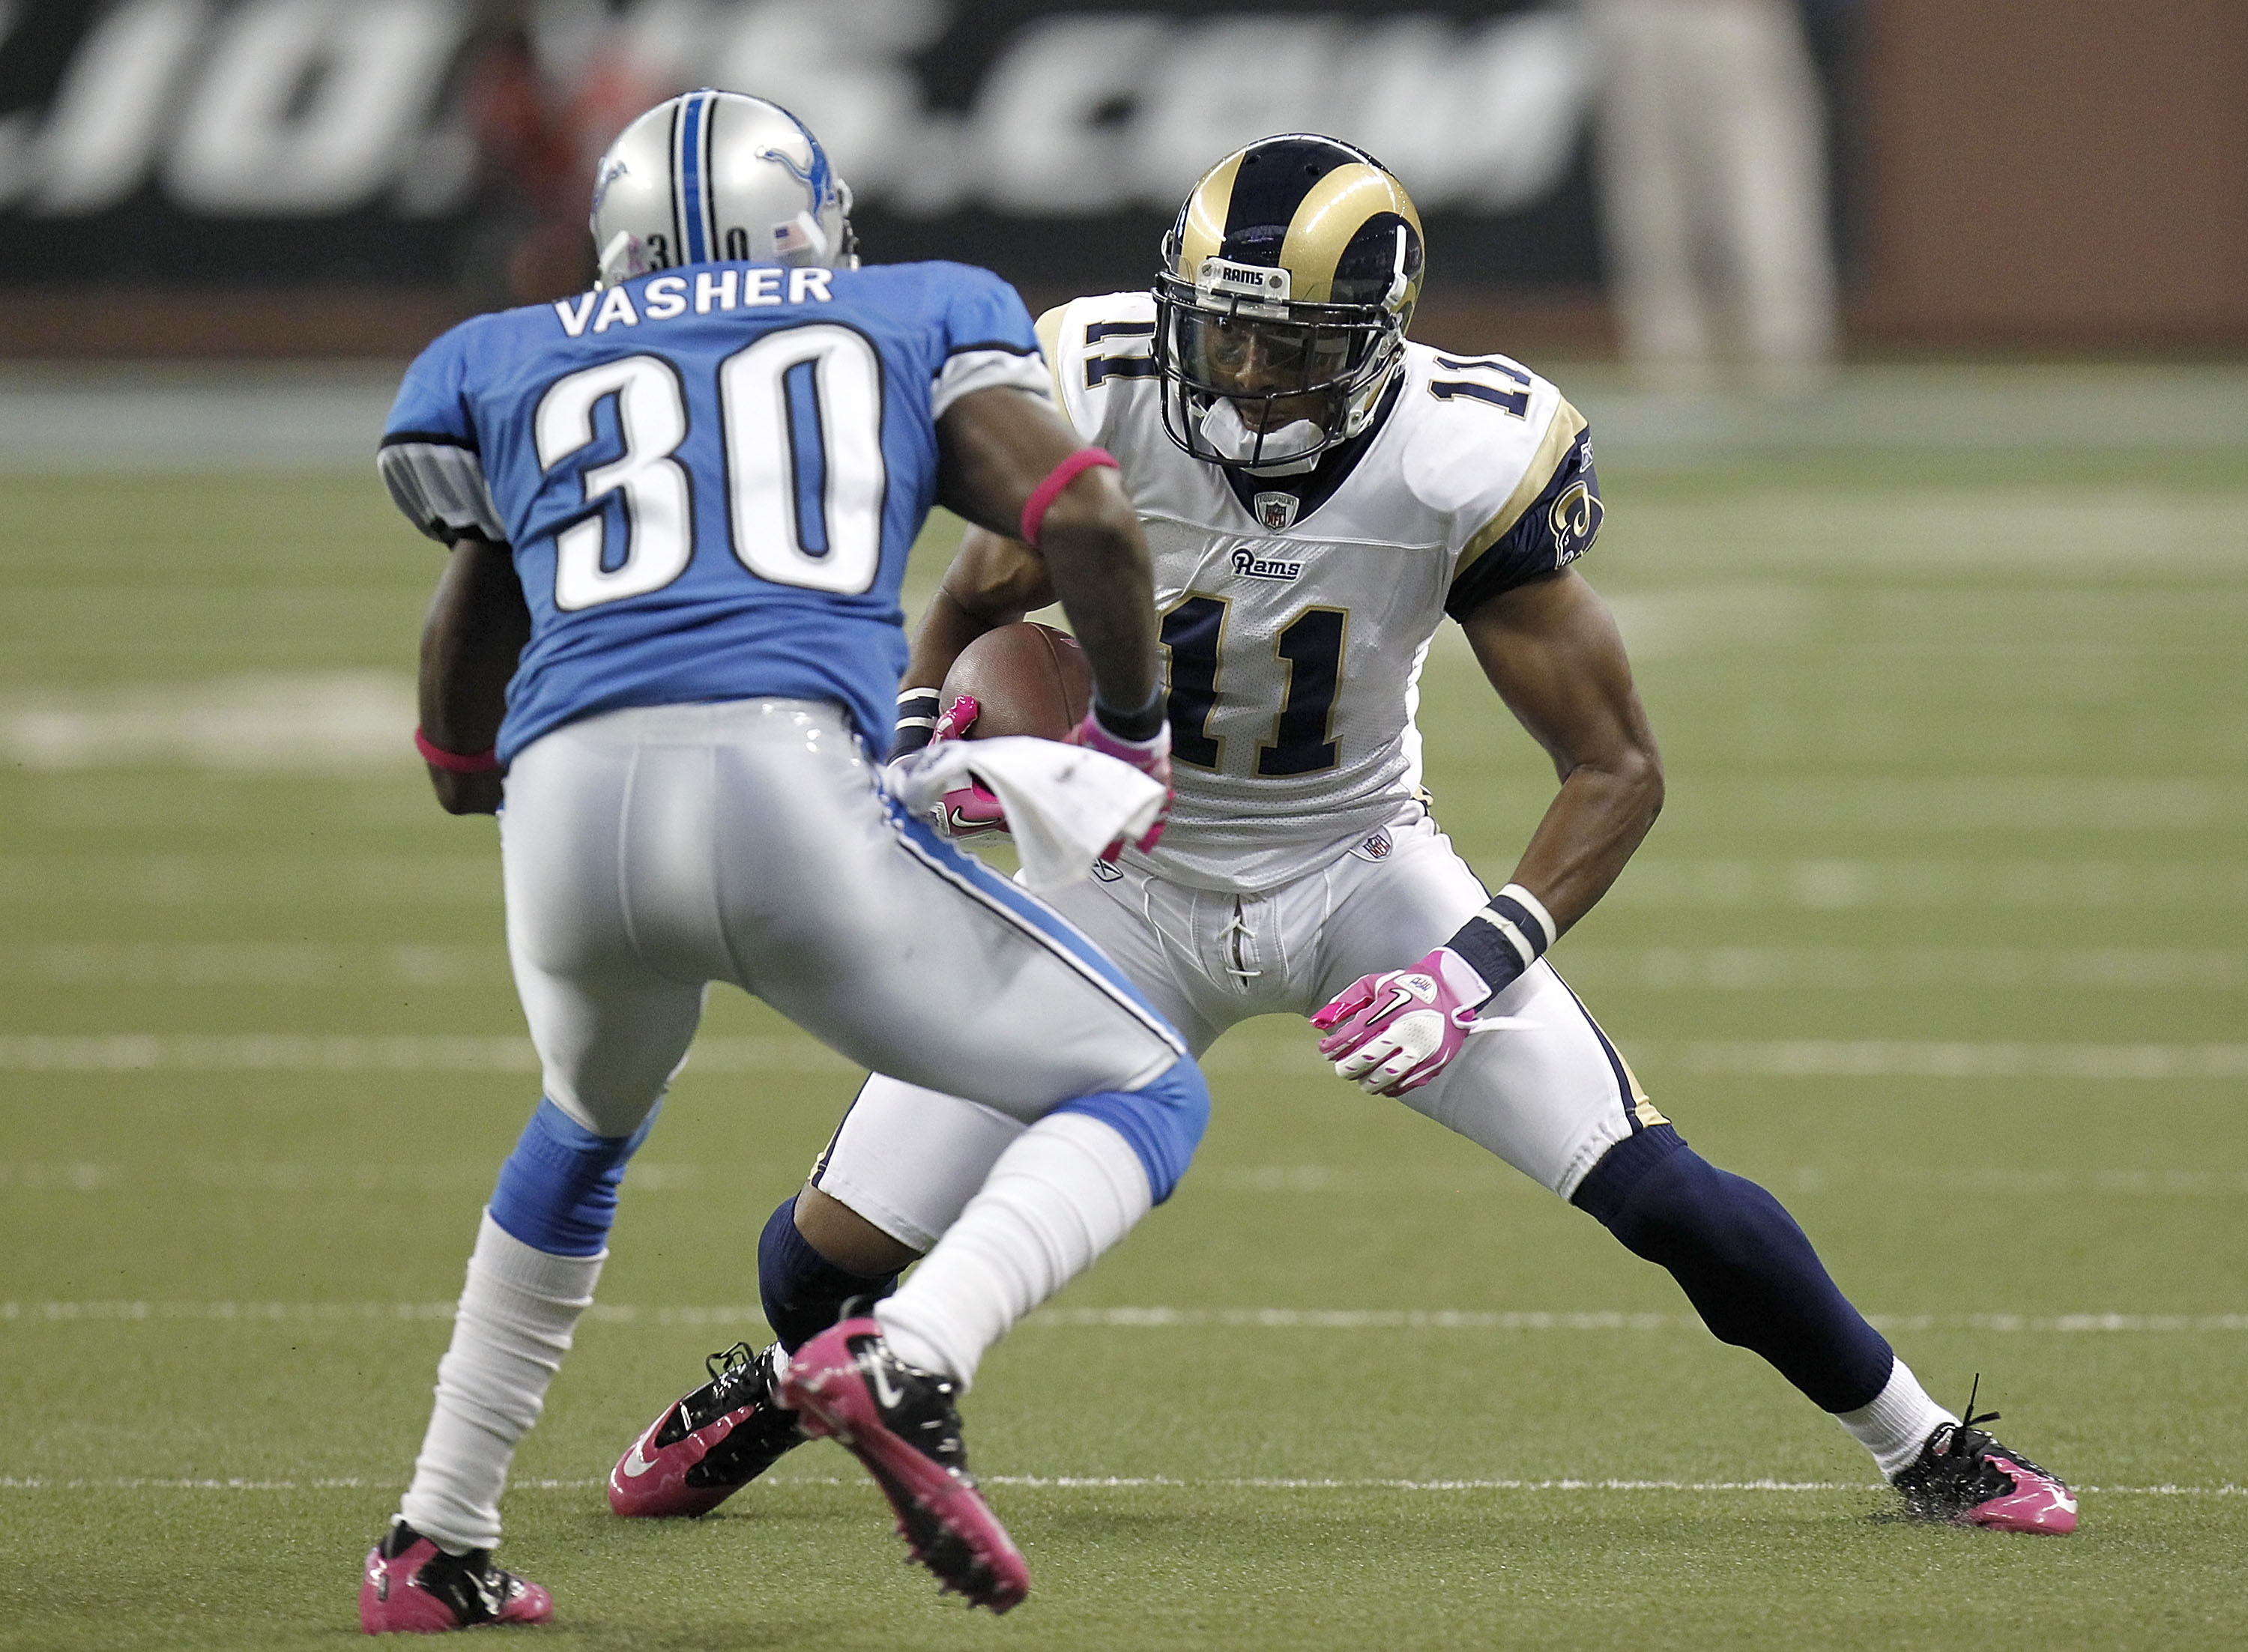 DETROIT - OCTOBER 10: Brandon Gibson #11 of the St. Louis Rams tries to get around the tackle of Nathan Vasher #30 of the Detroit Lions on October 10, 2010 at Ford Field in Detroit, Michigan.  (Photo by Gregory Shamus/Getty Images)